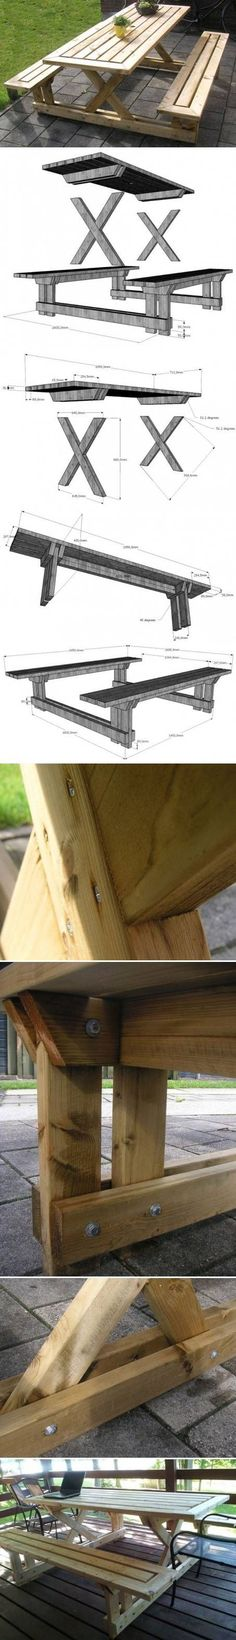 DIY Garden Bench and Table DIY Projects / UsefulDIY.com